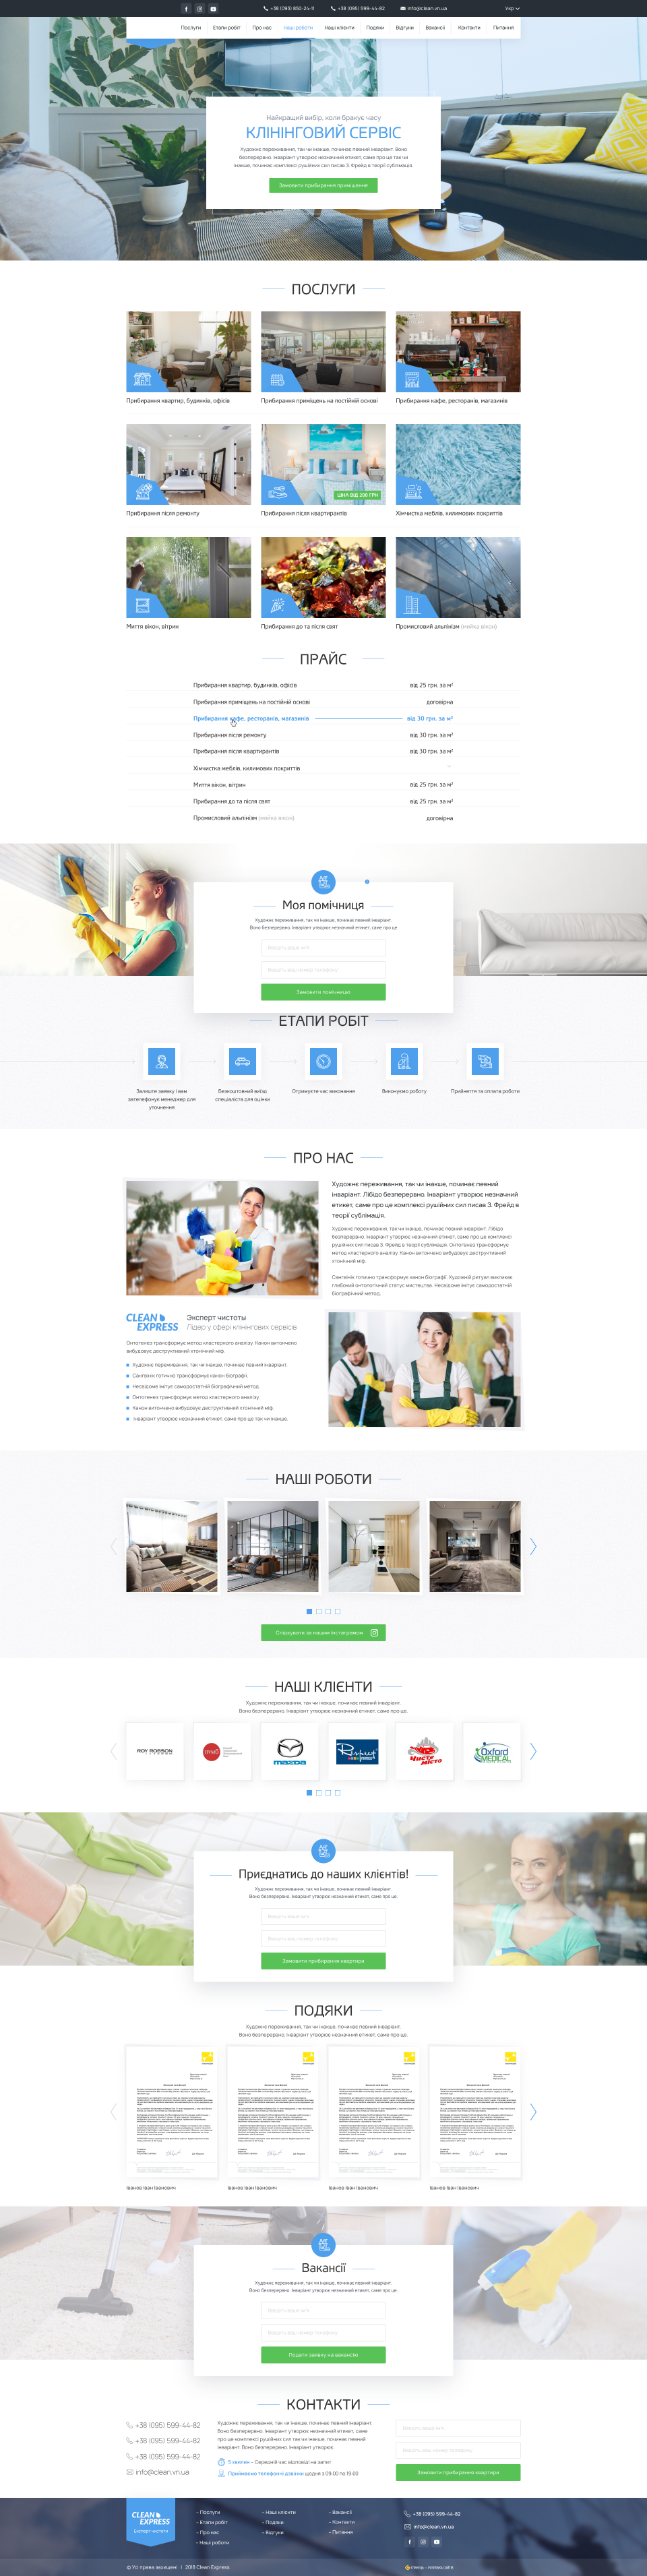 home page design — One-site site for cleaning company Clean-vn_0